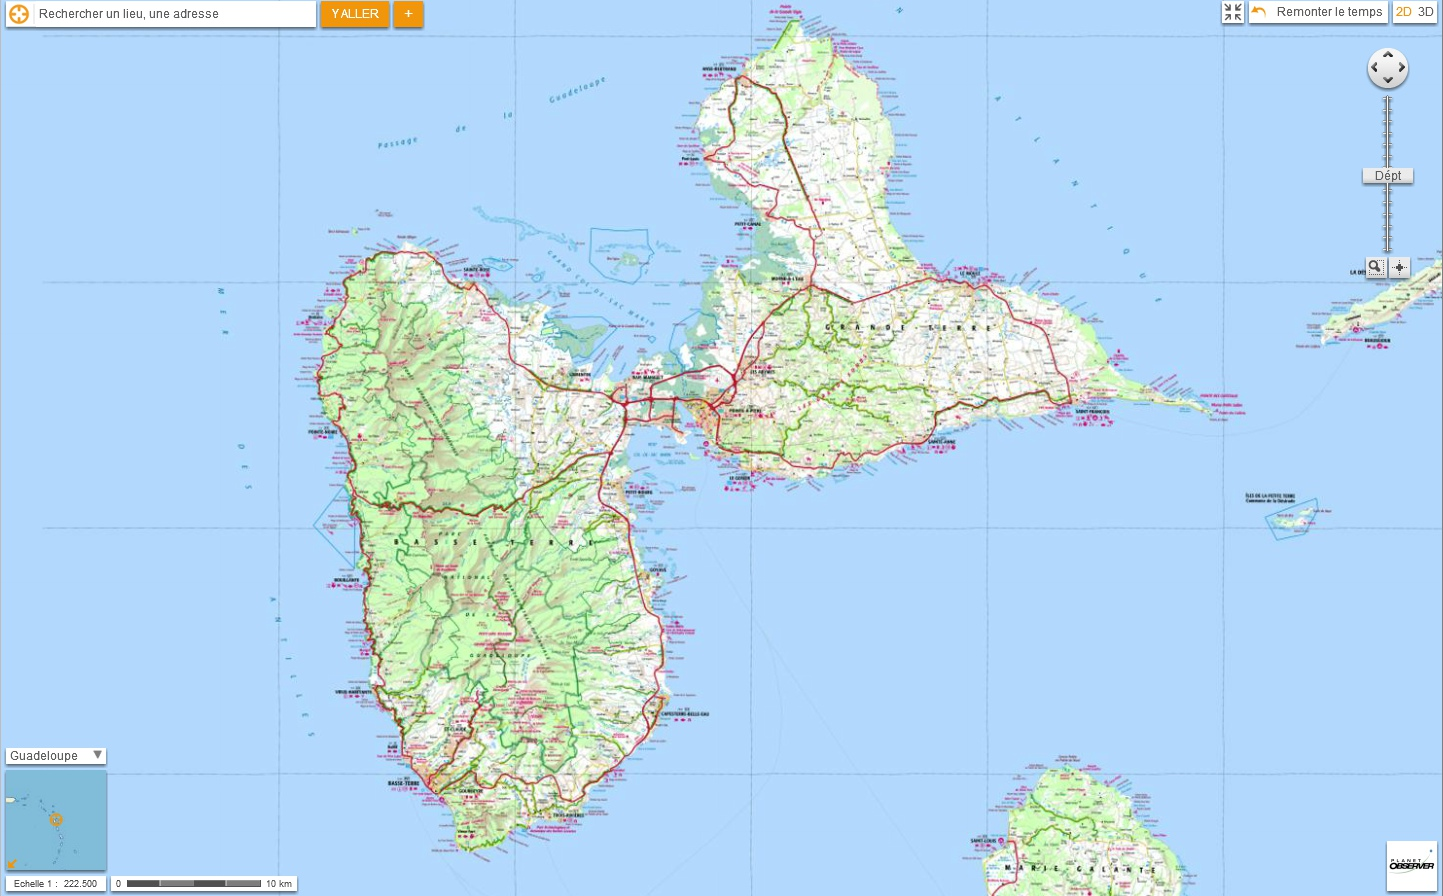 Related image with Carte Guadeloupe 1443x896